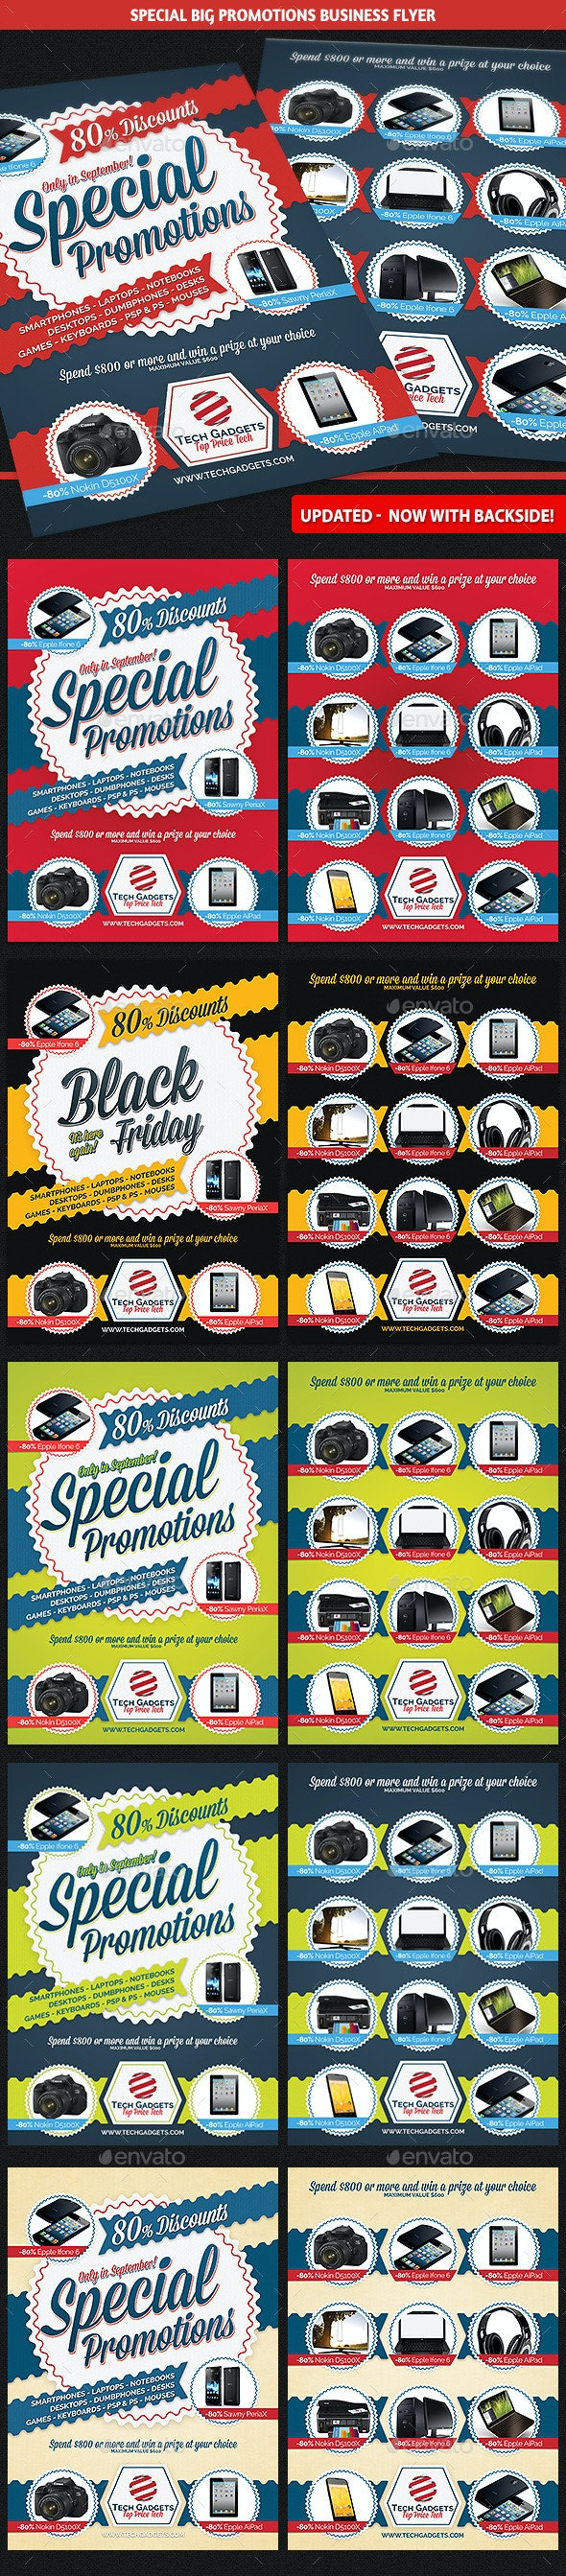 Special Big Promotions Commerce Flyer - Commerce Flyers